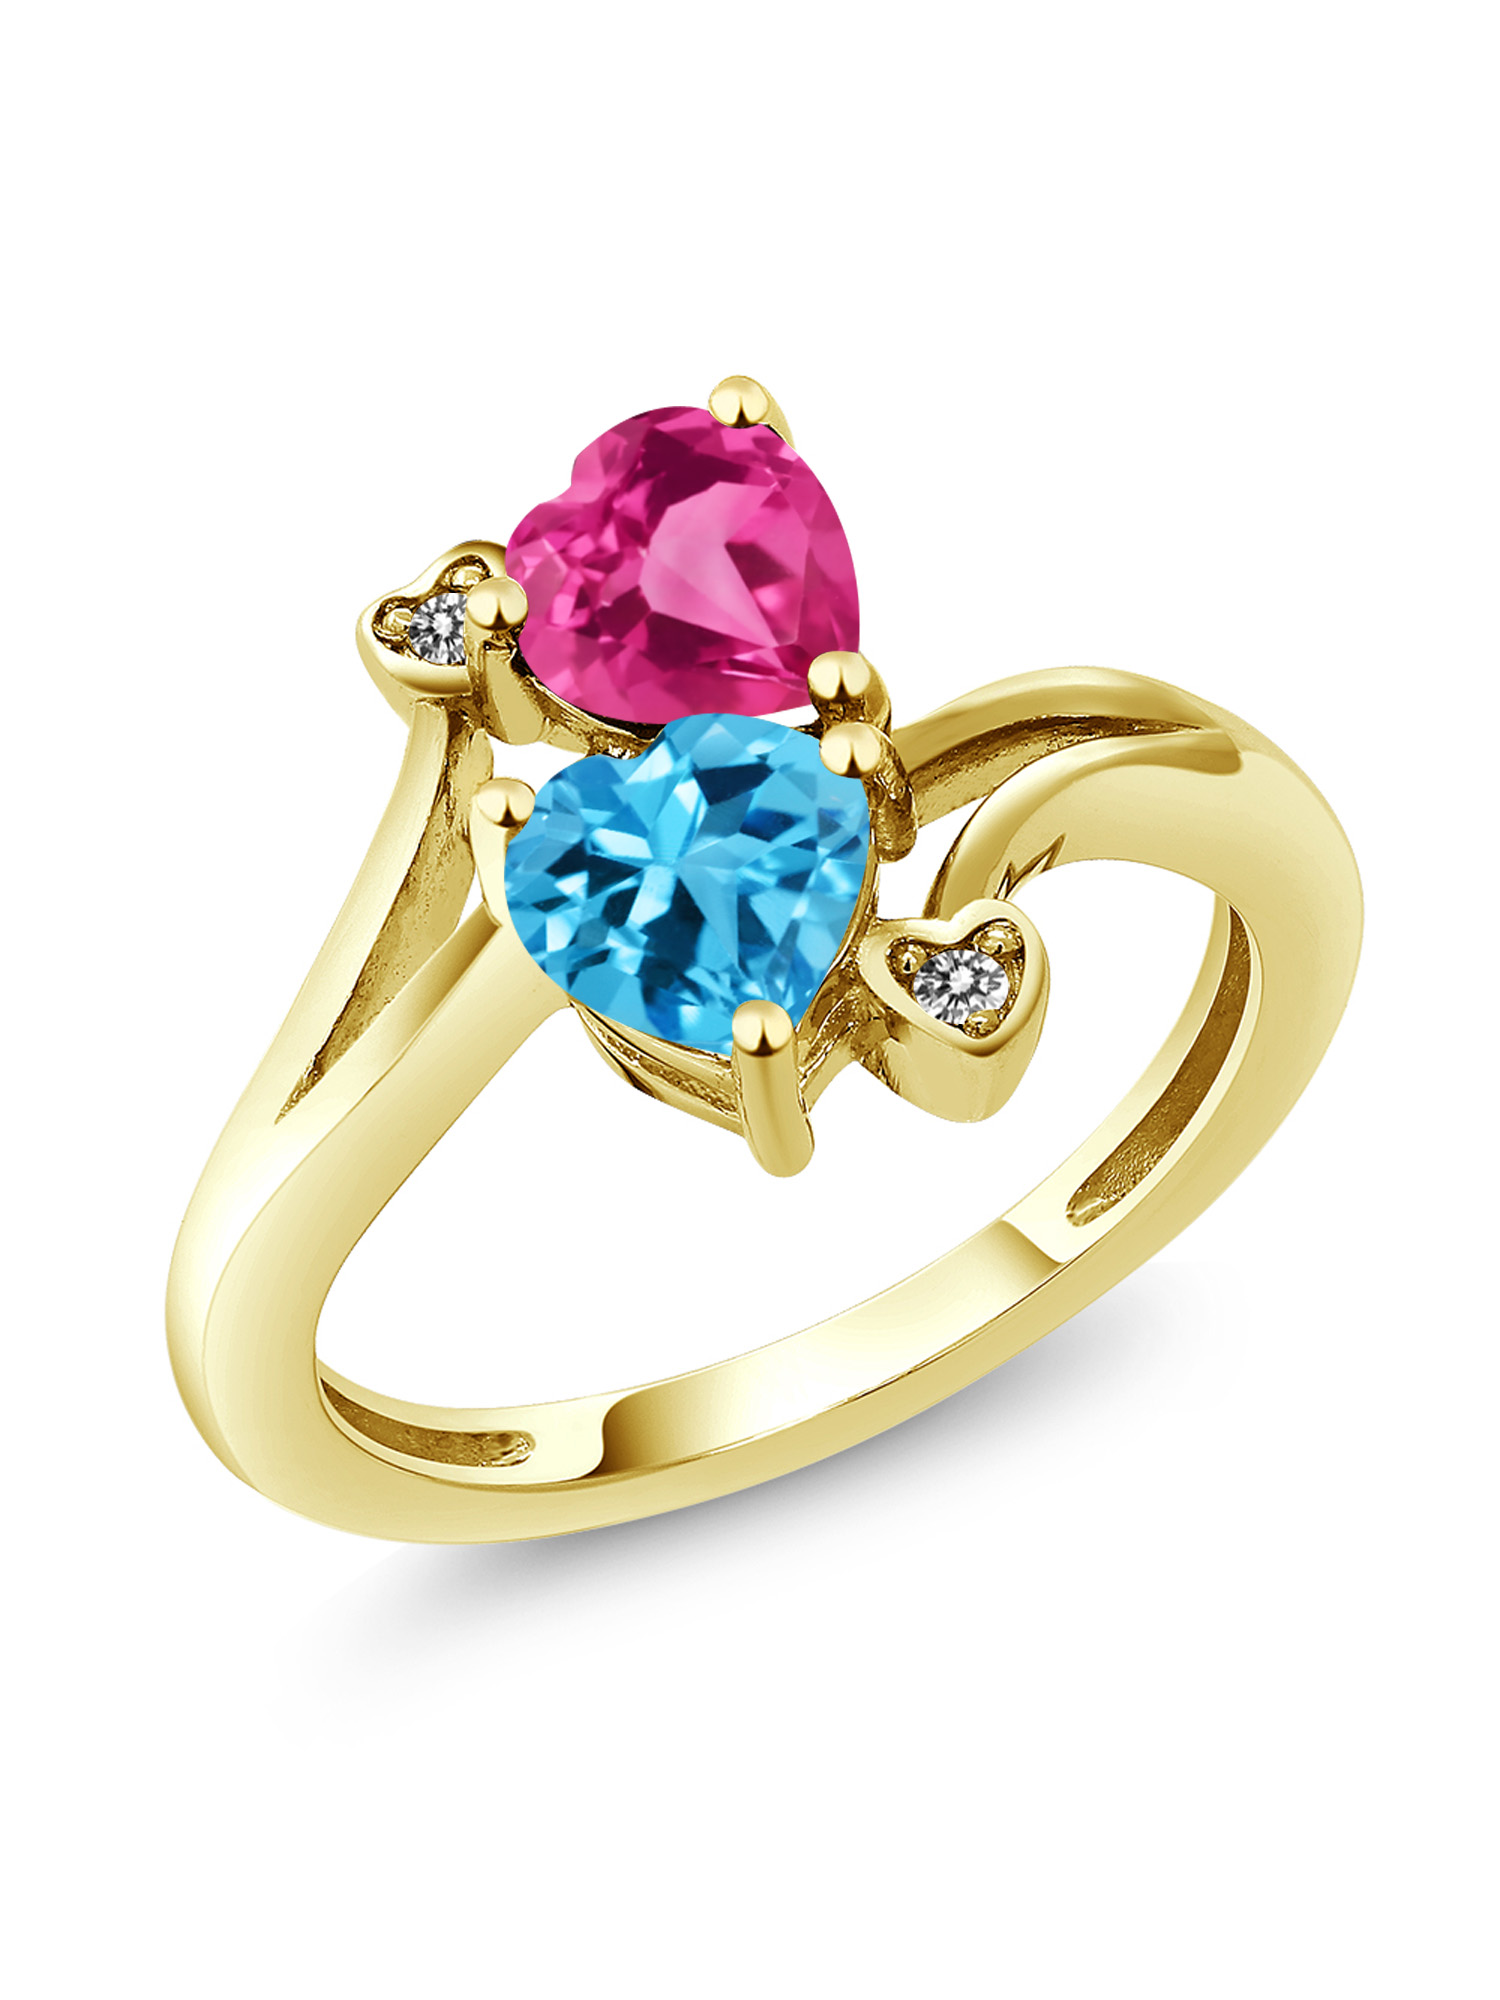 1.78 Ct Heart Shape Swiss Blue Topaz Pink Created Sapphire 10K Yellow Gold Ring by